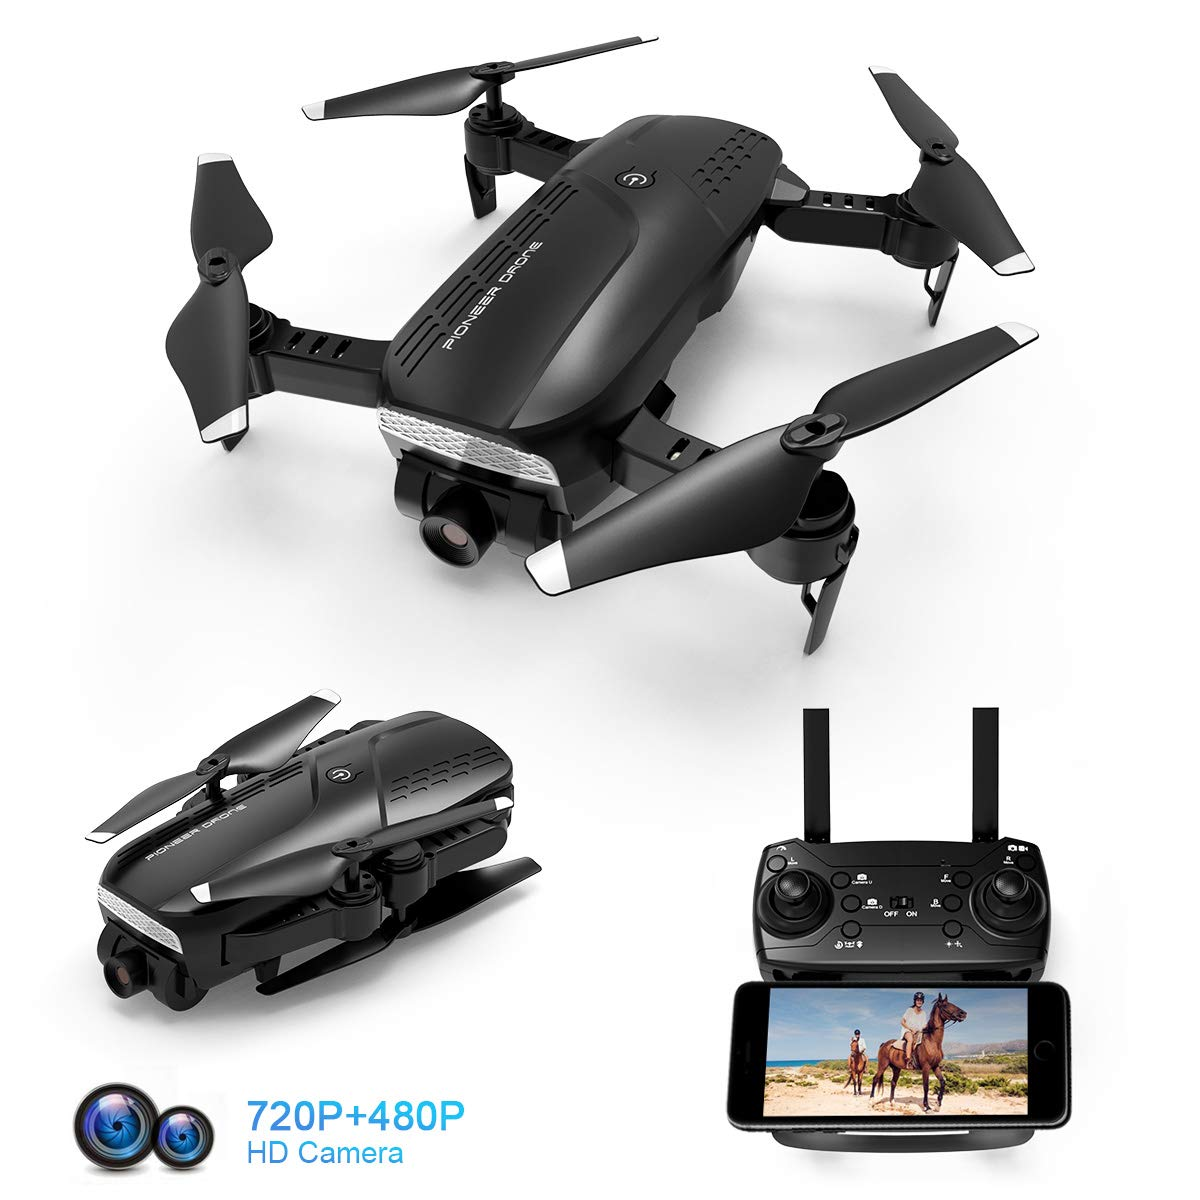 Foldable Drone with 720P HD Camera, 2.4 Ghz RC Quadcopter, 120° Wide-Angle, Altitude Hold, Voice Control, APP Control, One Key Return, Easy to Fly for Beginners Adults Boys Girls, 2 Batteries by shimu